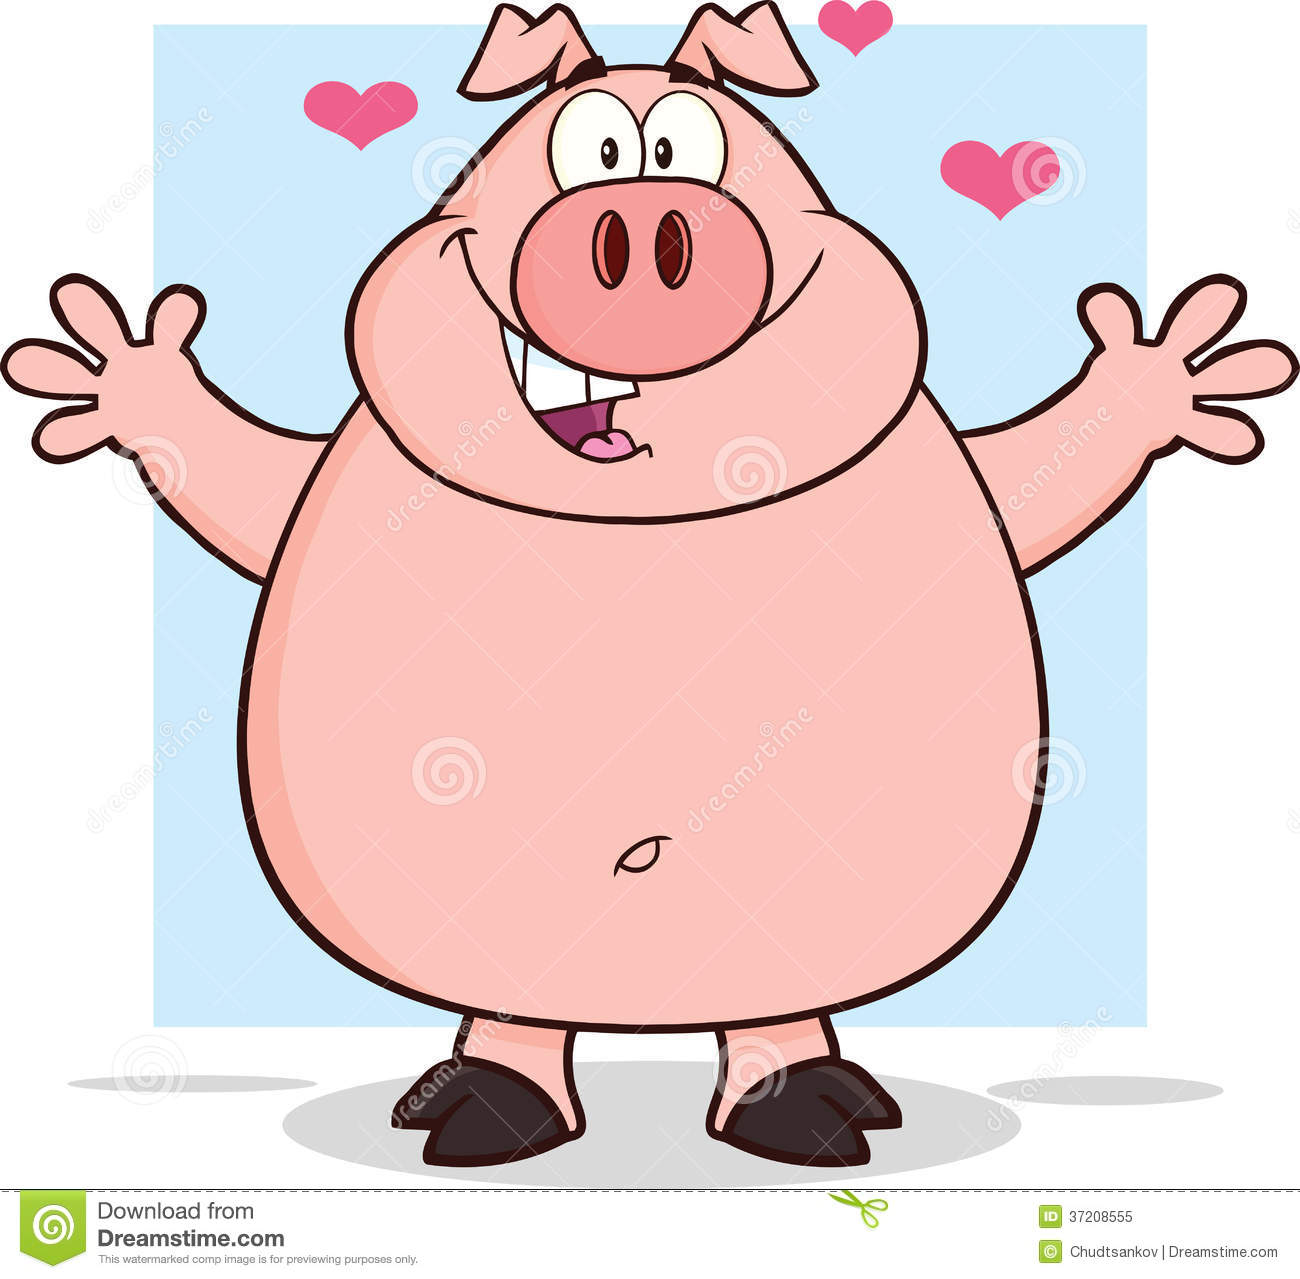 Male pig cartoon characters - photo#23